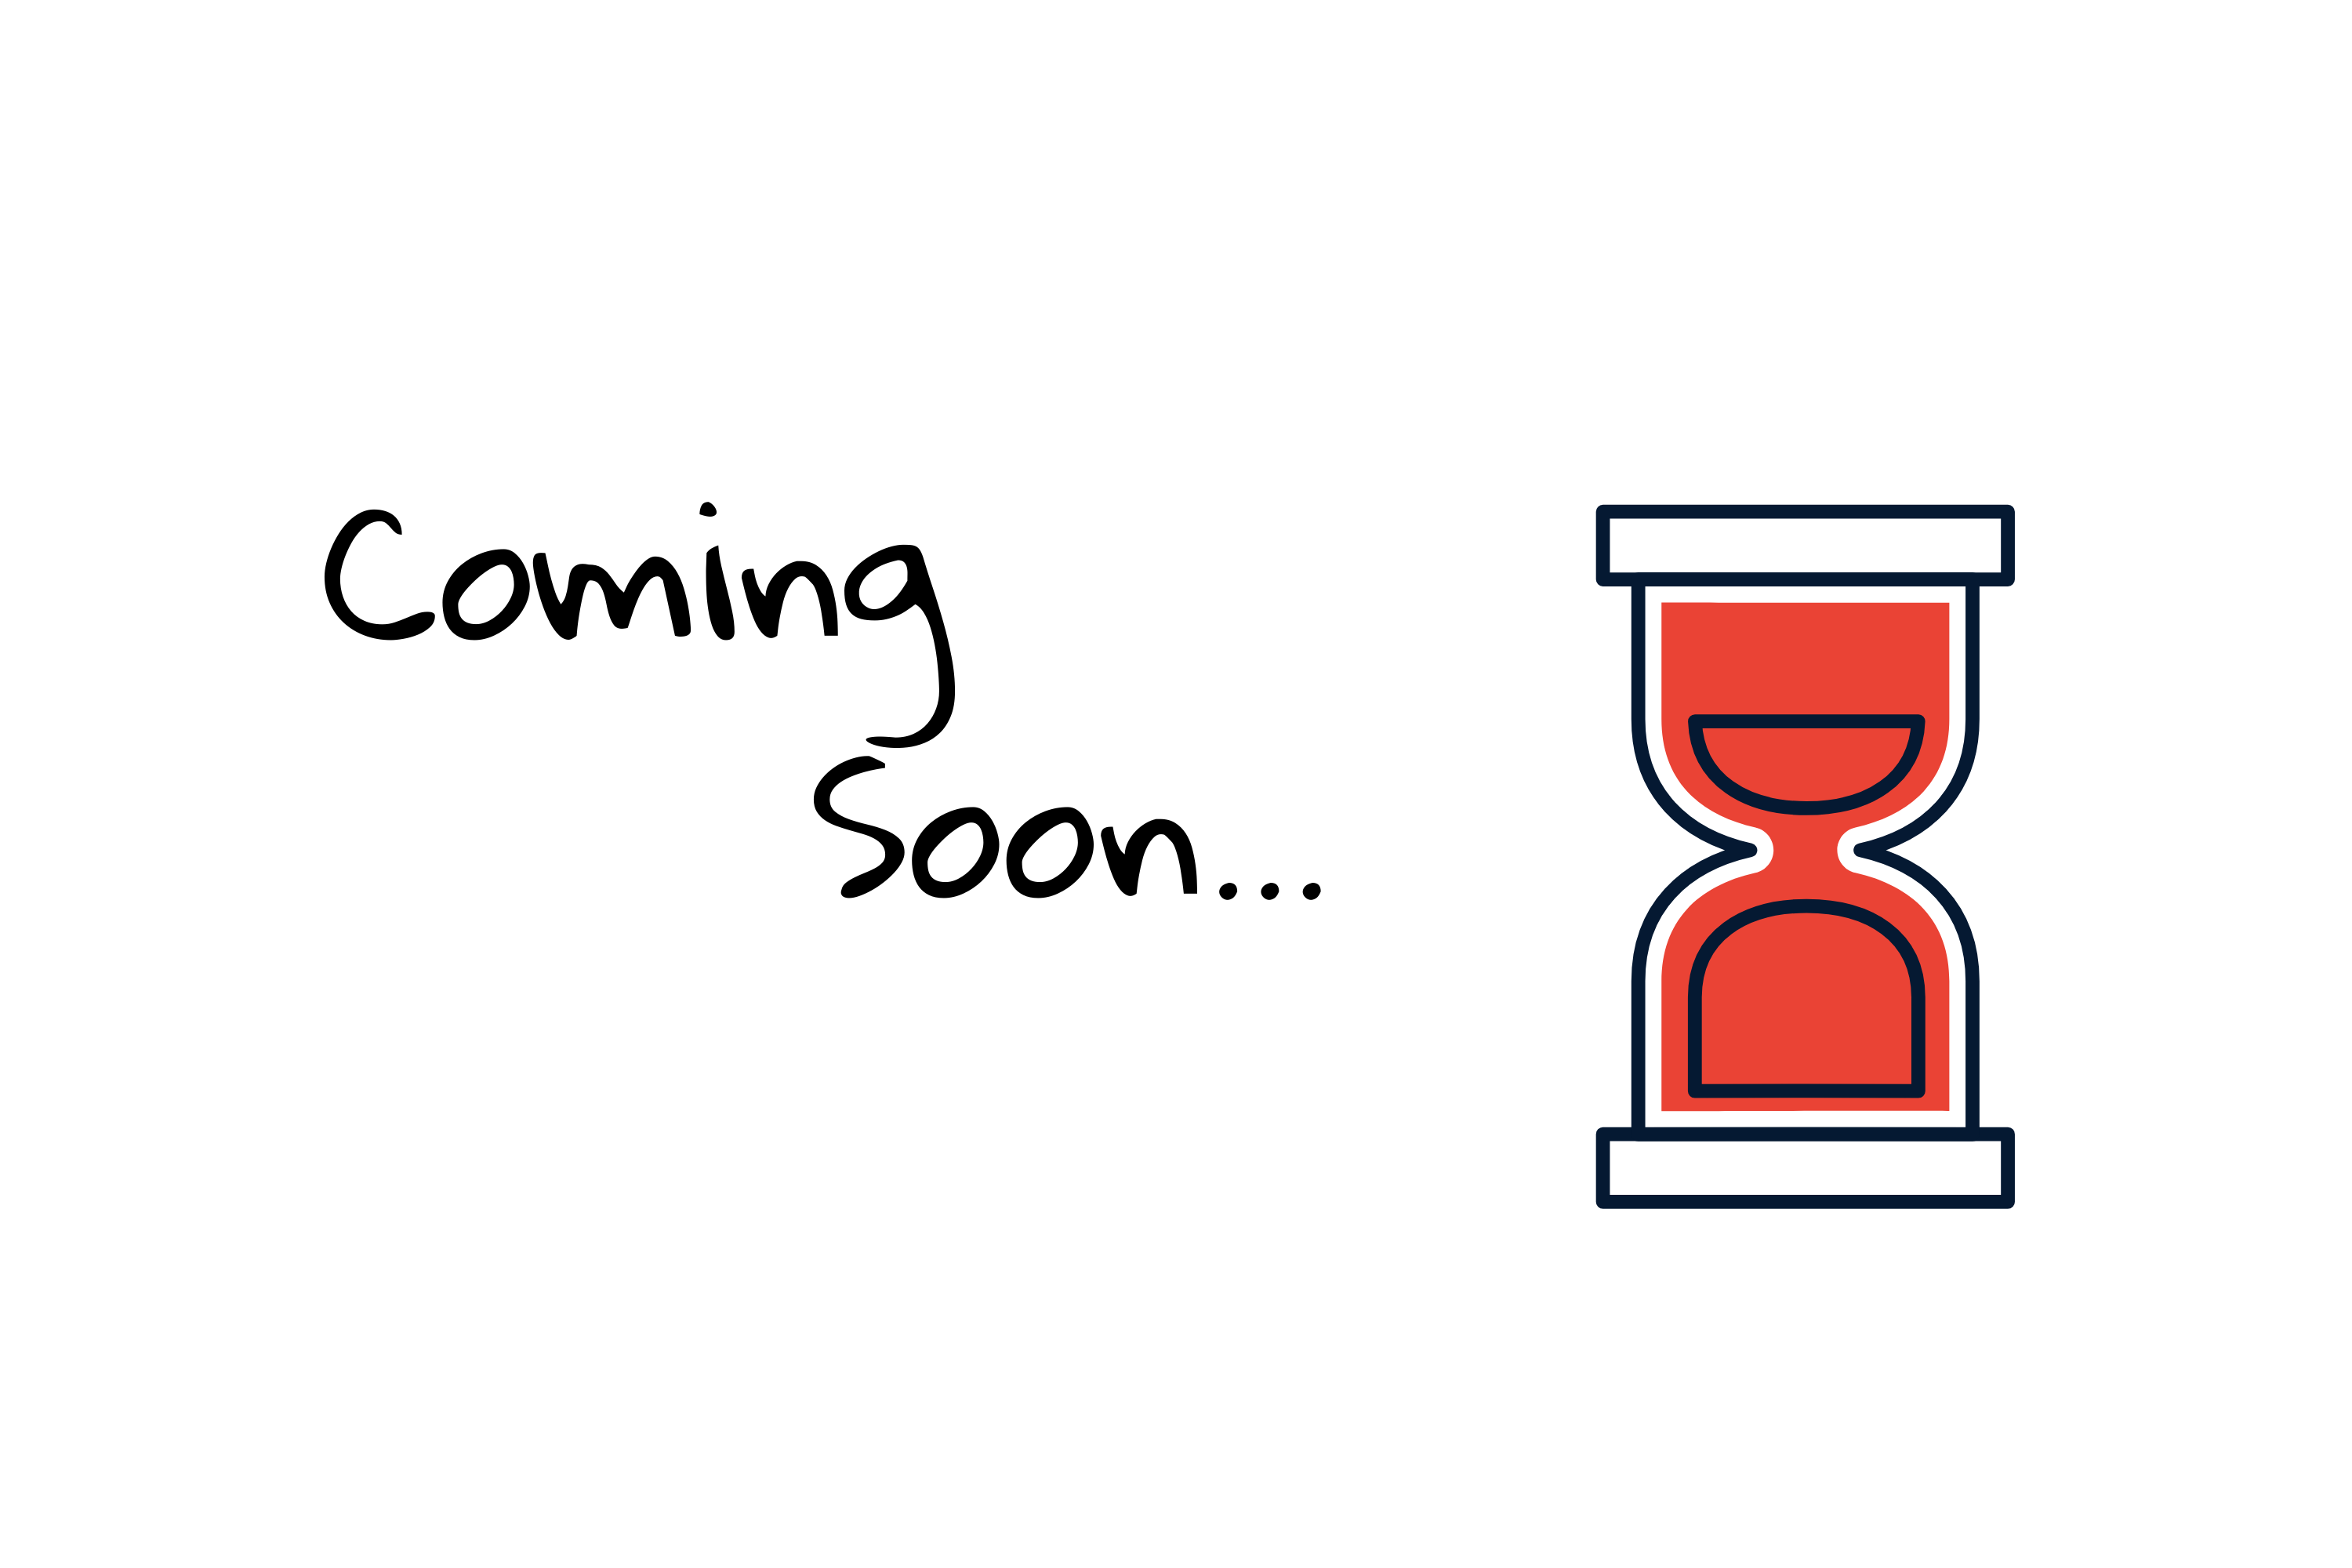 coming soon hour glass, we are coming soon hour glass, red hour glass white background